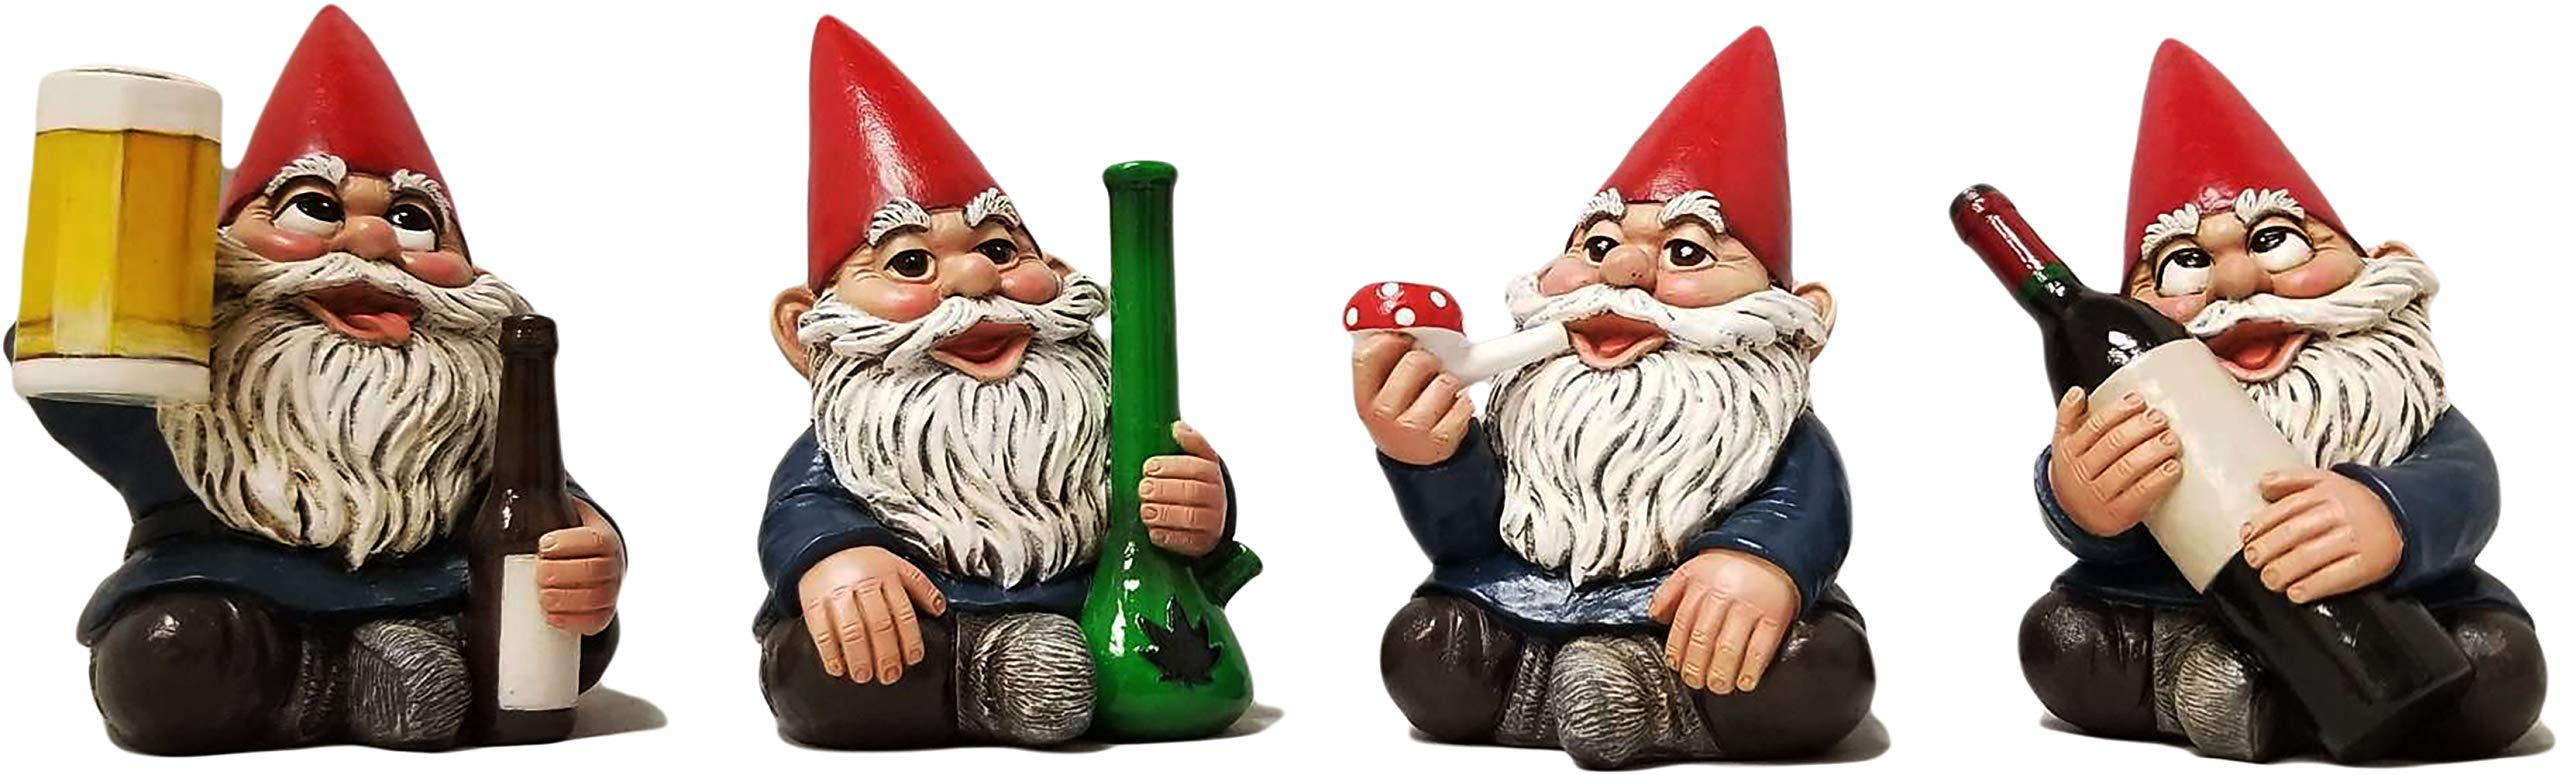 DWK 4'' Happy Time Bunch Set of Four (4) Mini Gnomes with Bong Wine Beer and Pipe Party Favor Figurine Decor for Home and Office